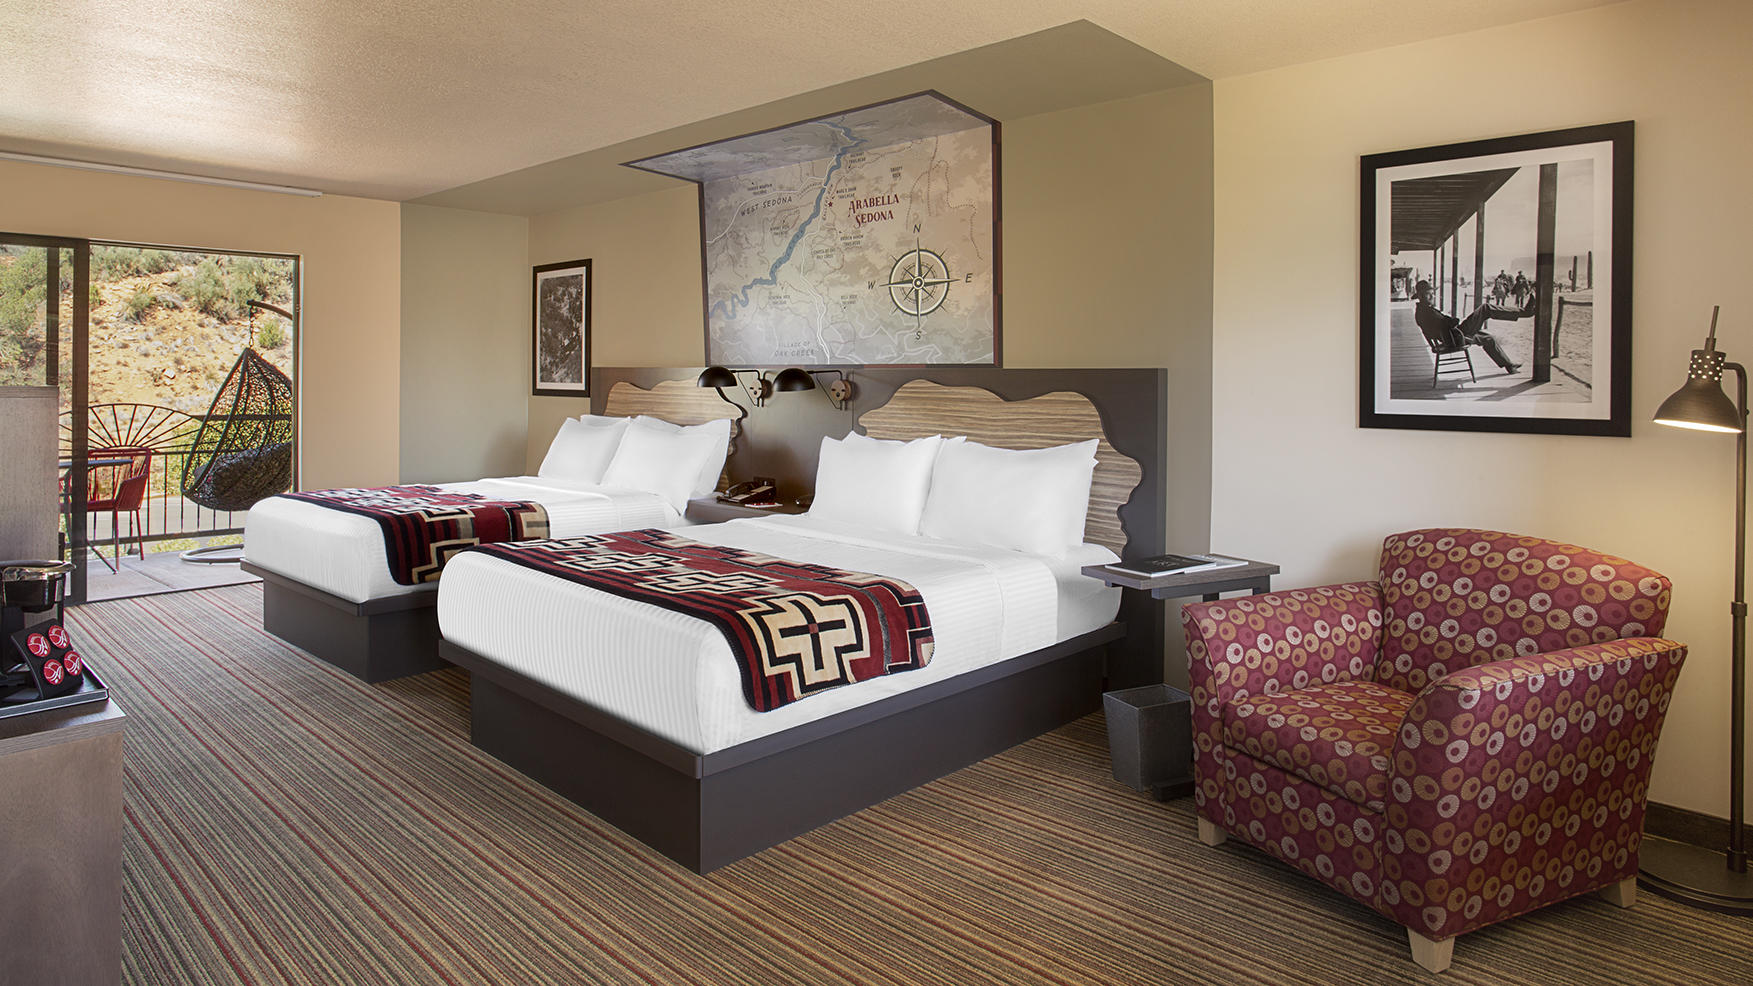 Trailhead hotel room with two queen beds.